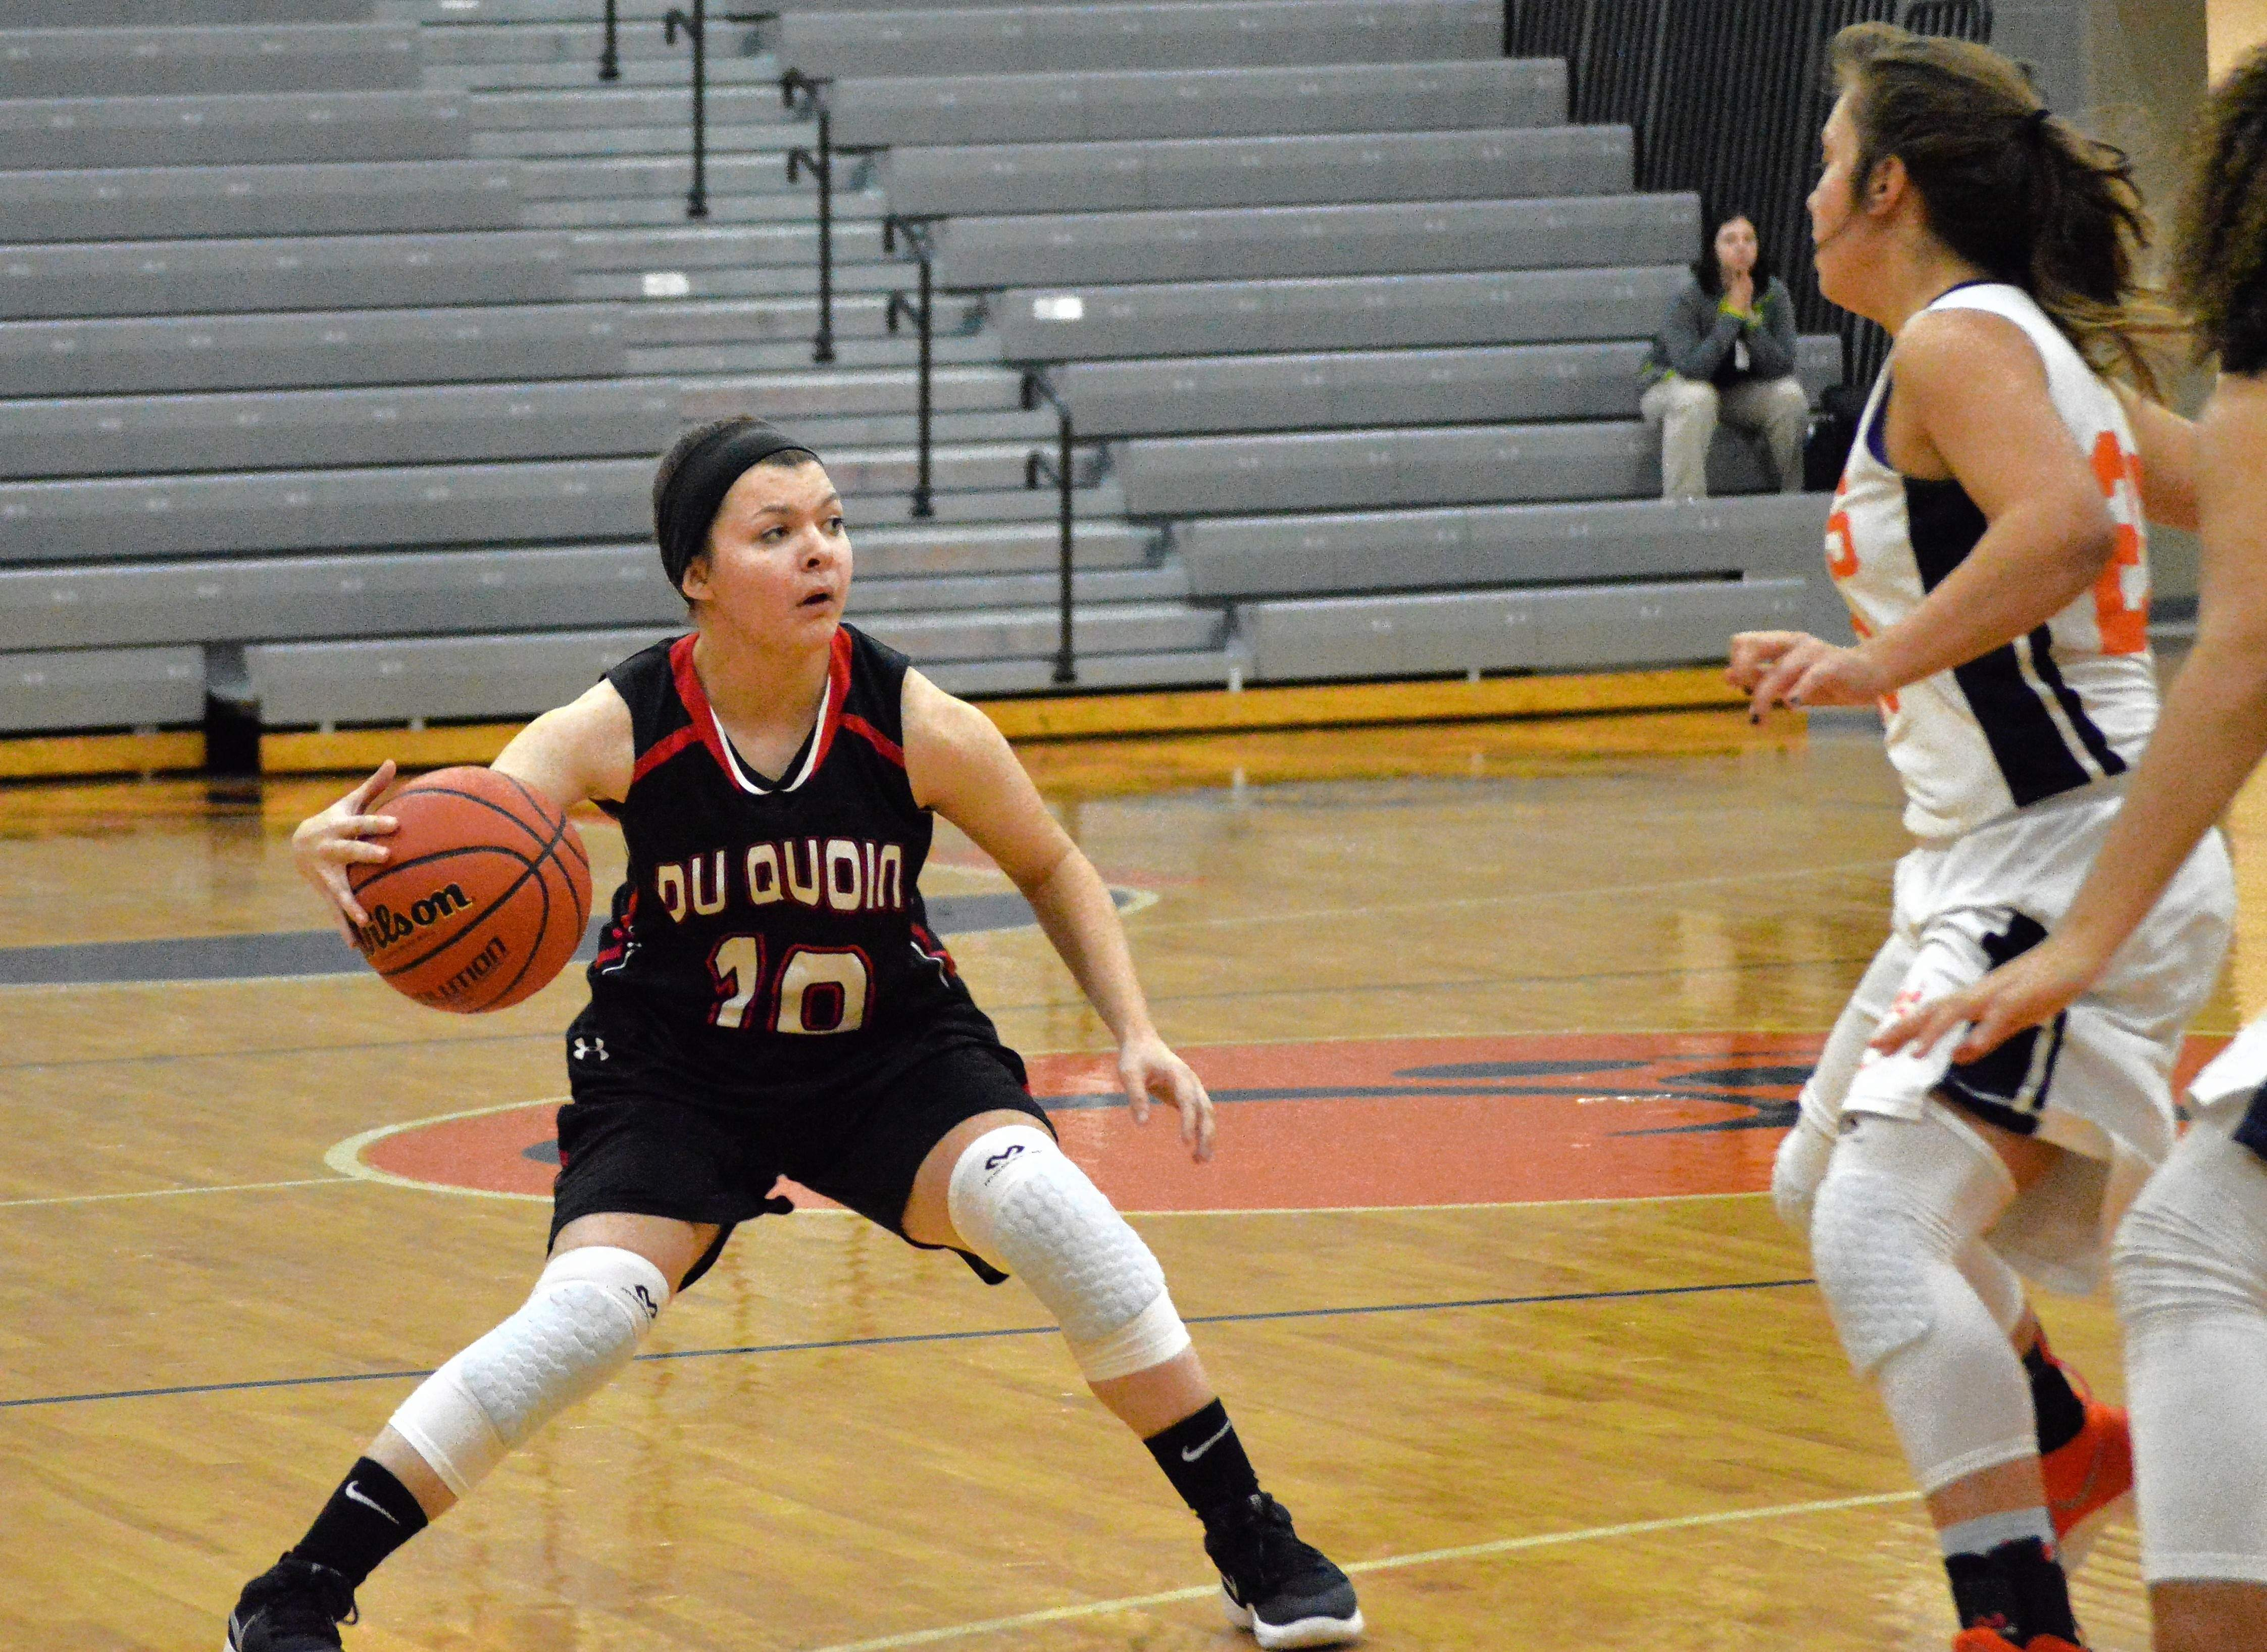 Katie Smith maneuvers the ball away from Lions' defenders.